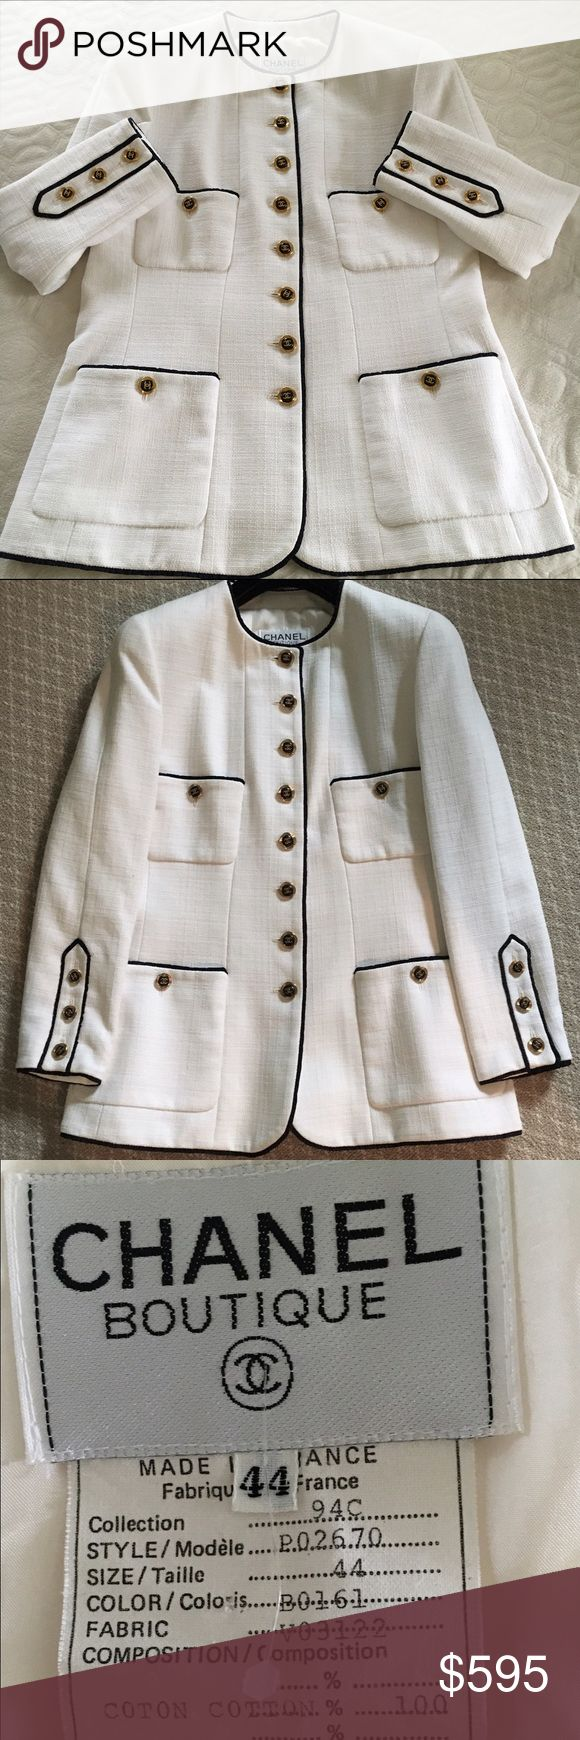 """Authentic CHANEL Creme and Black Blazer Size:44 CHANEL BOUTIQUE Creme and Black Jacket with Grosgrain Ribbon Trim                                           Details:  Size:  44.  Measurements: Shoulder 16"""", Sleeve 23"""", Length 29"""" and Bust 42"""".  From 1994 Cruise Collection,. 100% Silk Lined.  Made in France.  18 Gold and Black CC Logo Buttons-all stamped. Great Pre-Owned Condition.  Please let me know if you have any questions. Thanks for looking!! CHANEL Jackets & Coats"""